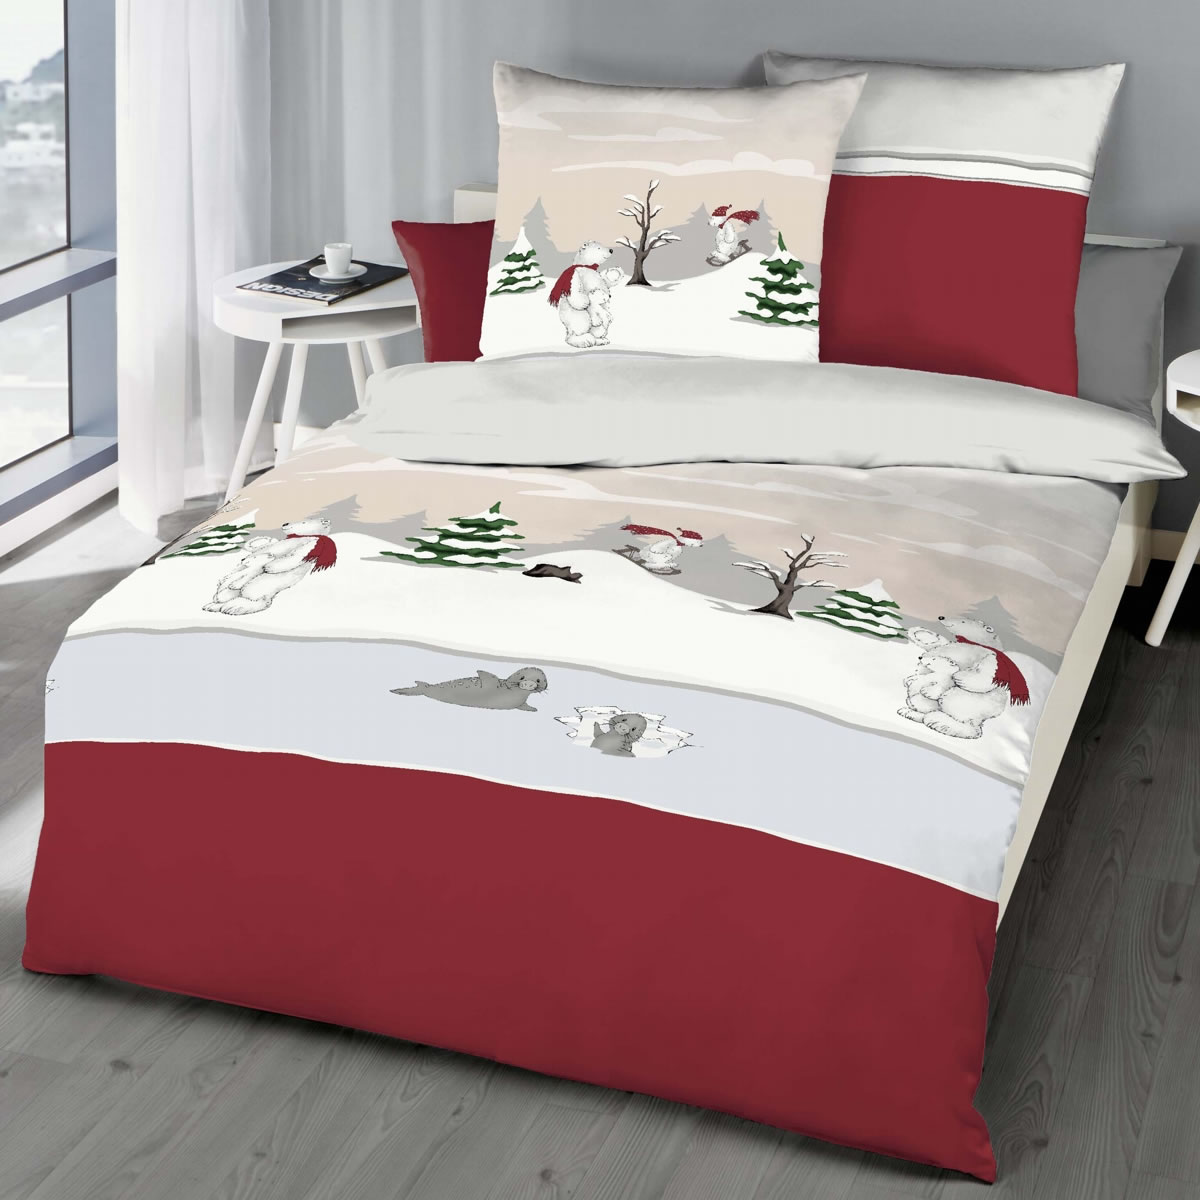 kaeppel biber bettw sche 155x220 cm design 6252 eisb r rot winter. Black Bedroom Furniture Sets. Home Design Ideas